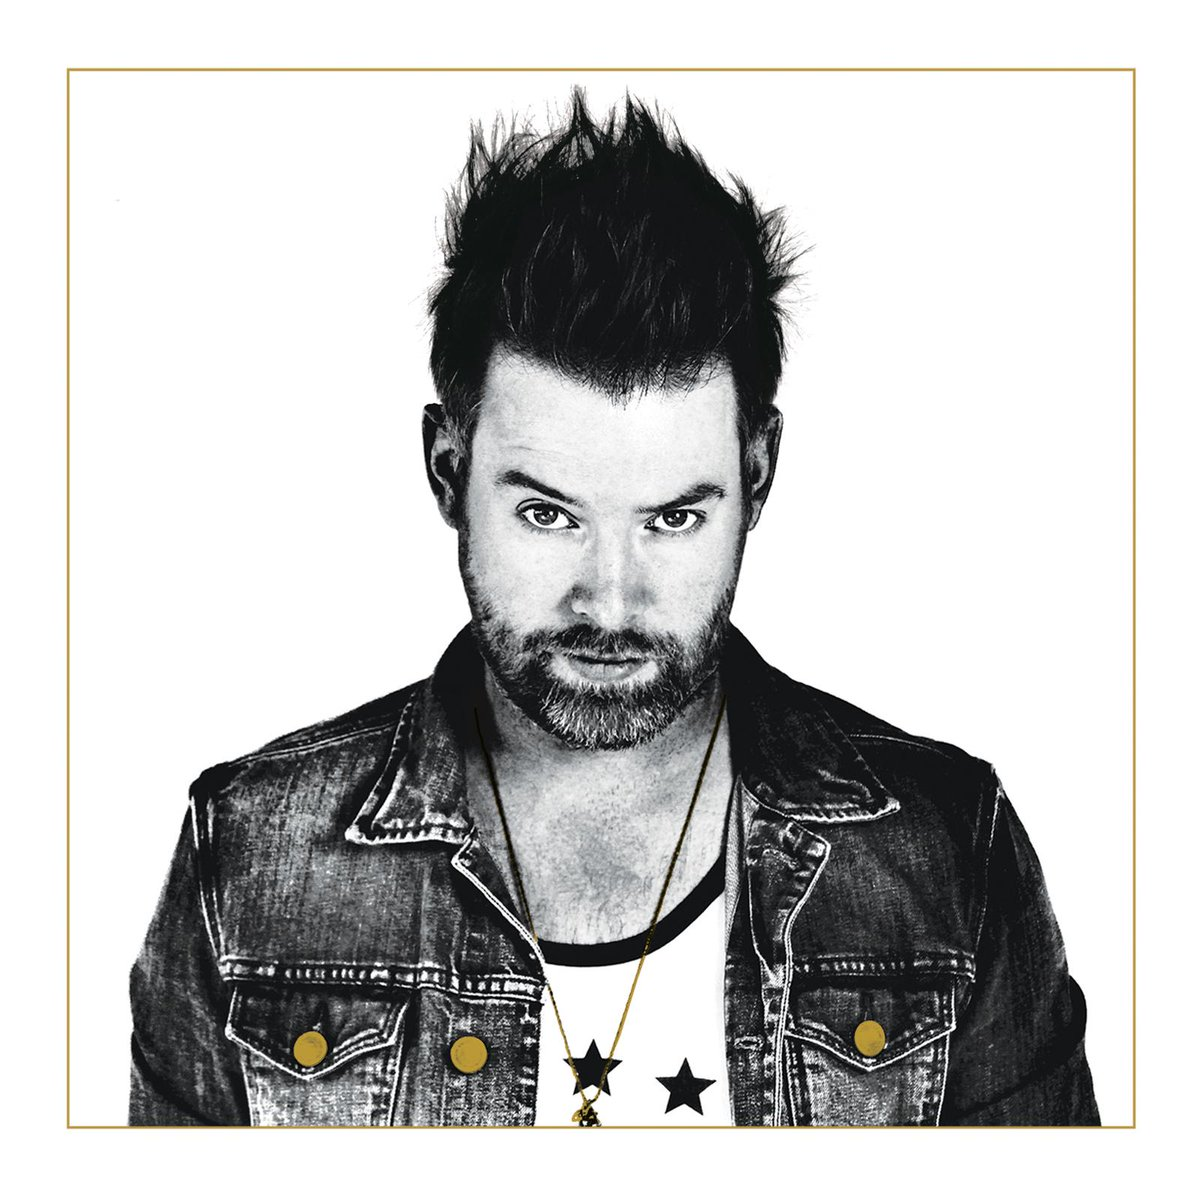 ~Just Announced~ November 11 // @thedavidcook Tickets on sale Tuesday 8/4 at 12pm! * http://t.co/19ZZiaZVEd * http://t.co/lz7s6o1K9j